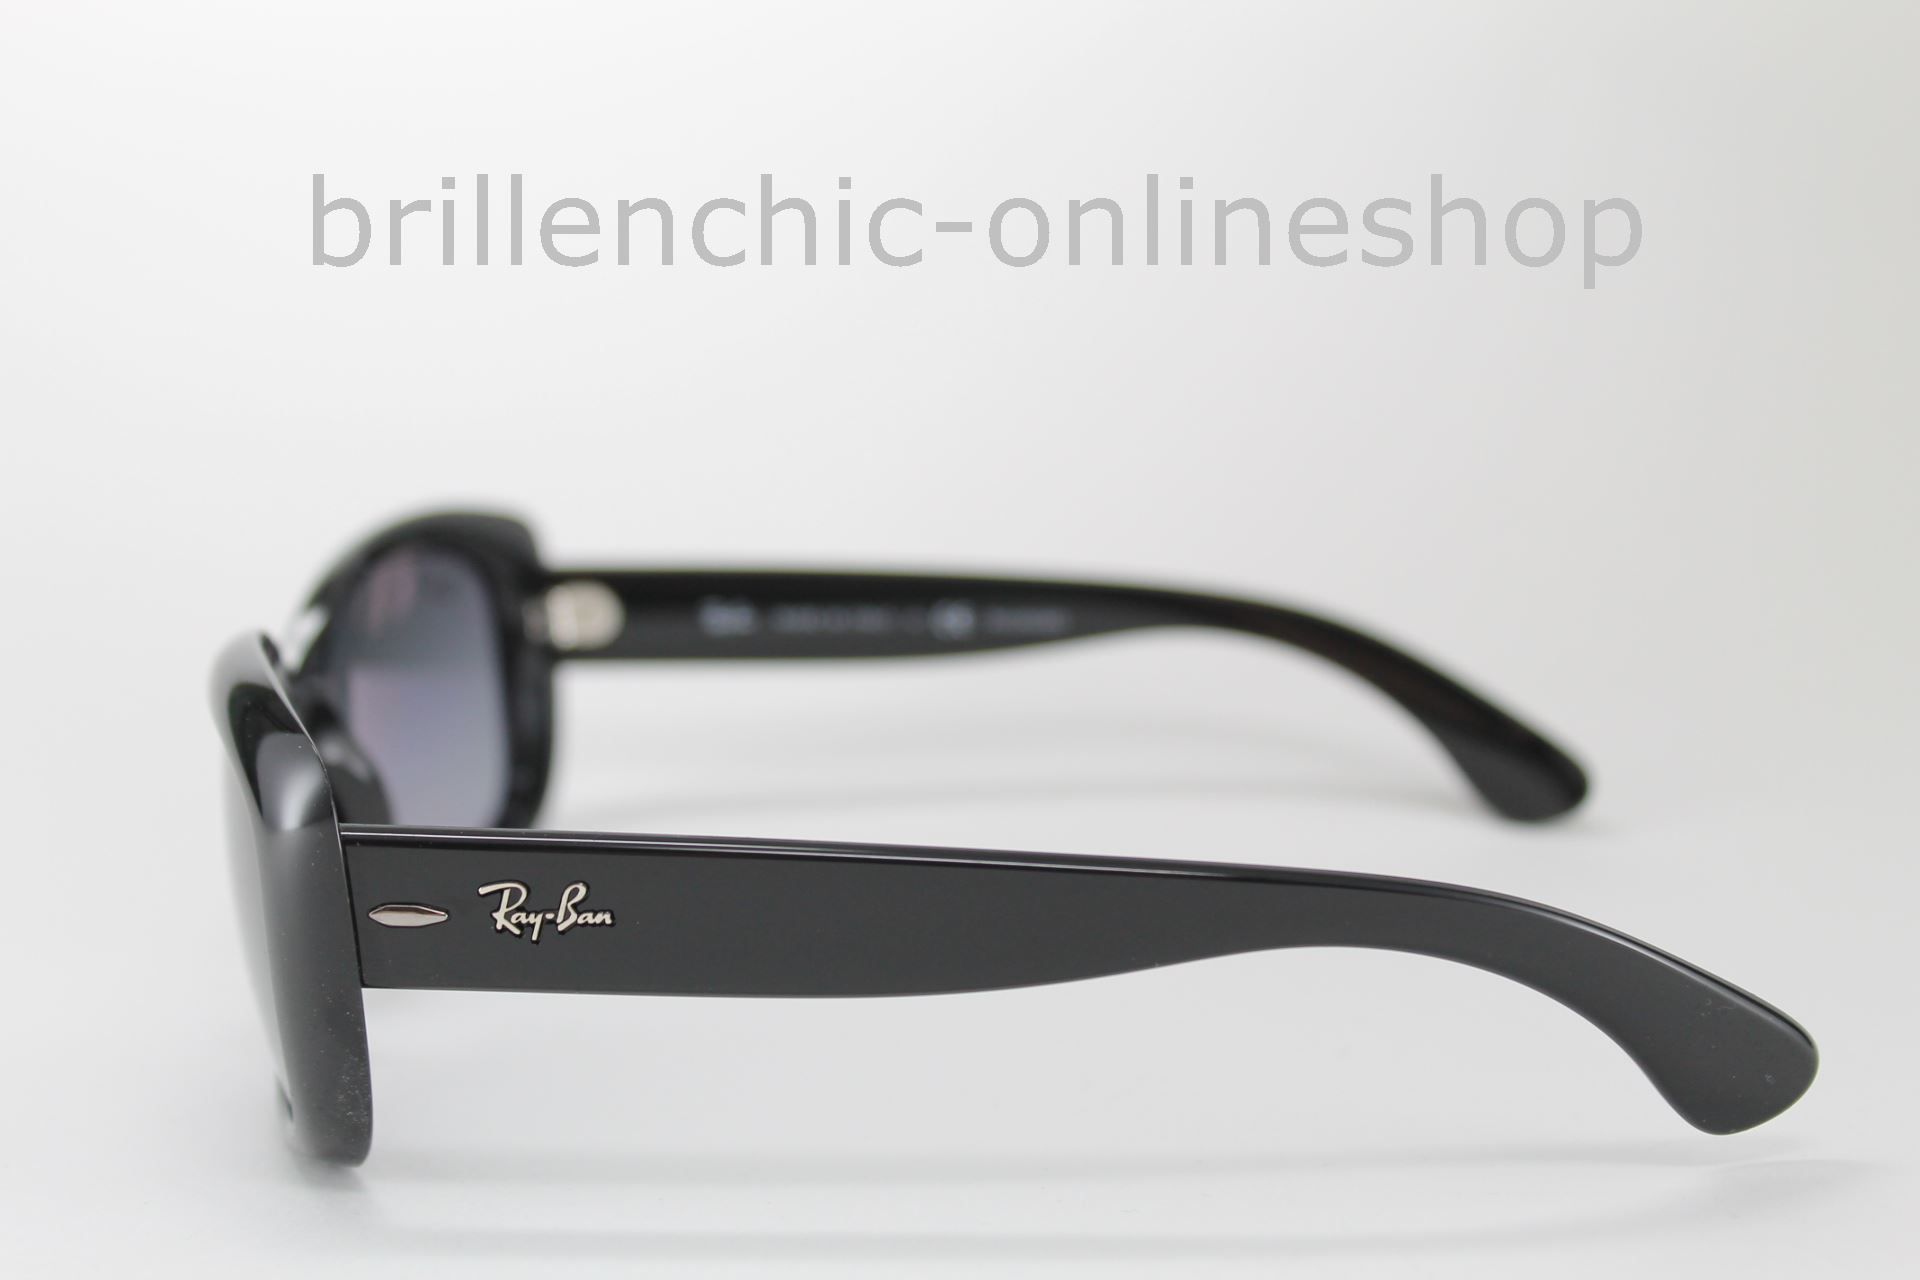 Brillenchic-onlineshop in Berlin - Ray Ban JACKIE OHH RB 4101 601 ... 5ef6cf1067f05